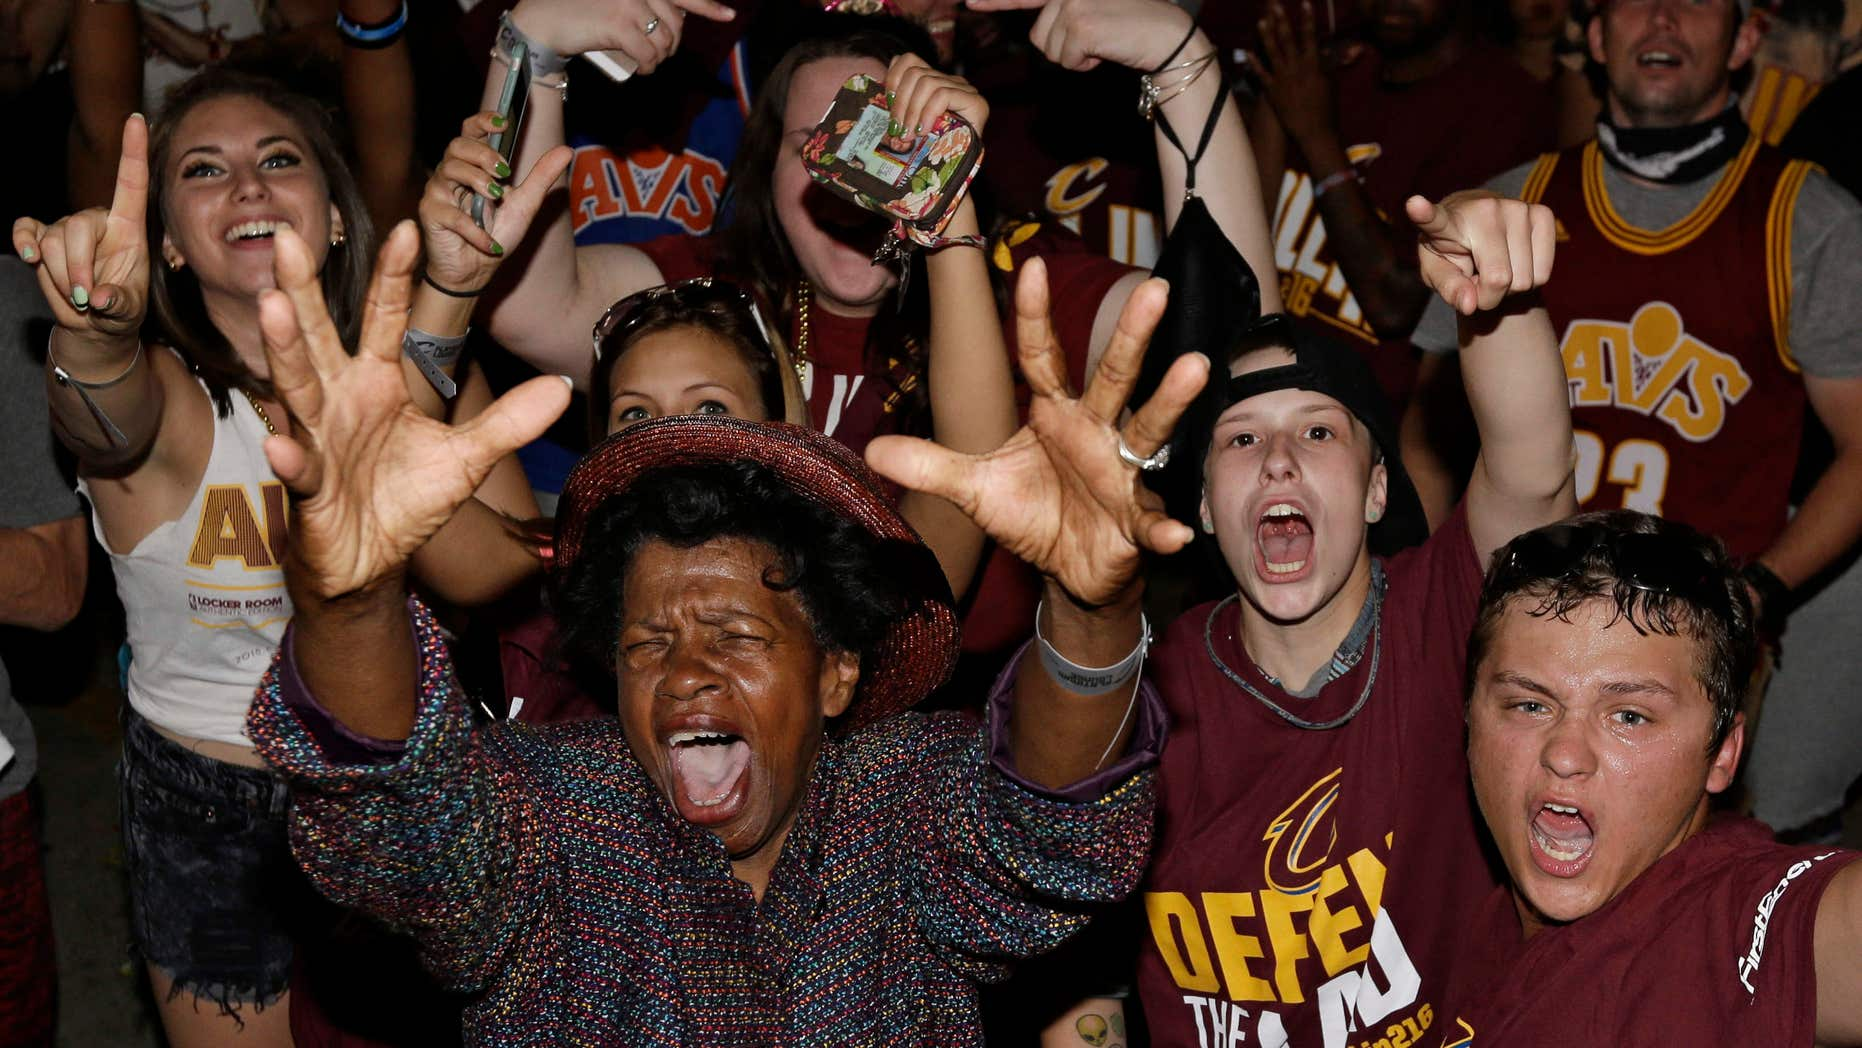 Cleveland Cavaliers fans celebrate after the Cavaliers defeated the Golden State Warriors 93-89 in Game 7 of the NBA basketball Finals, Sunday, June 19, 2016, in Cleveland.